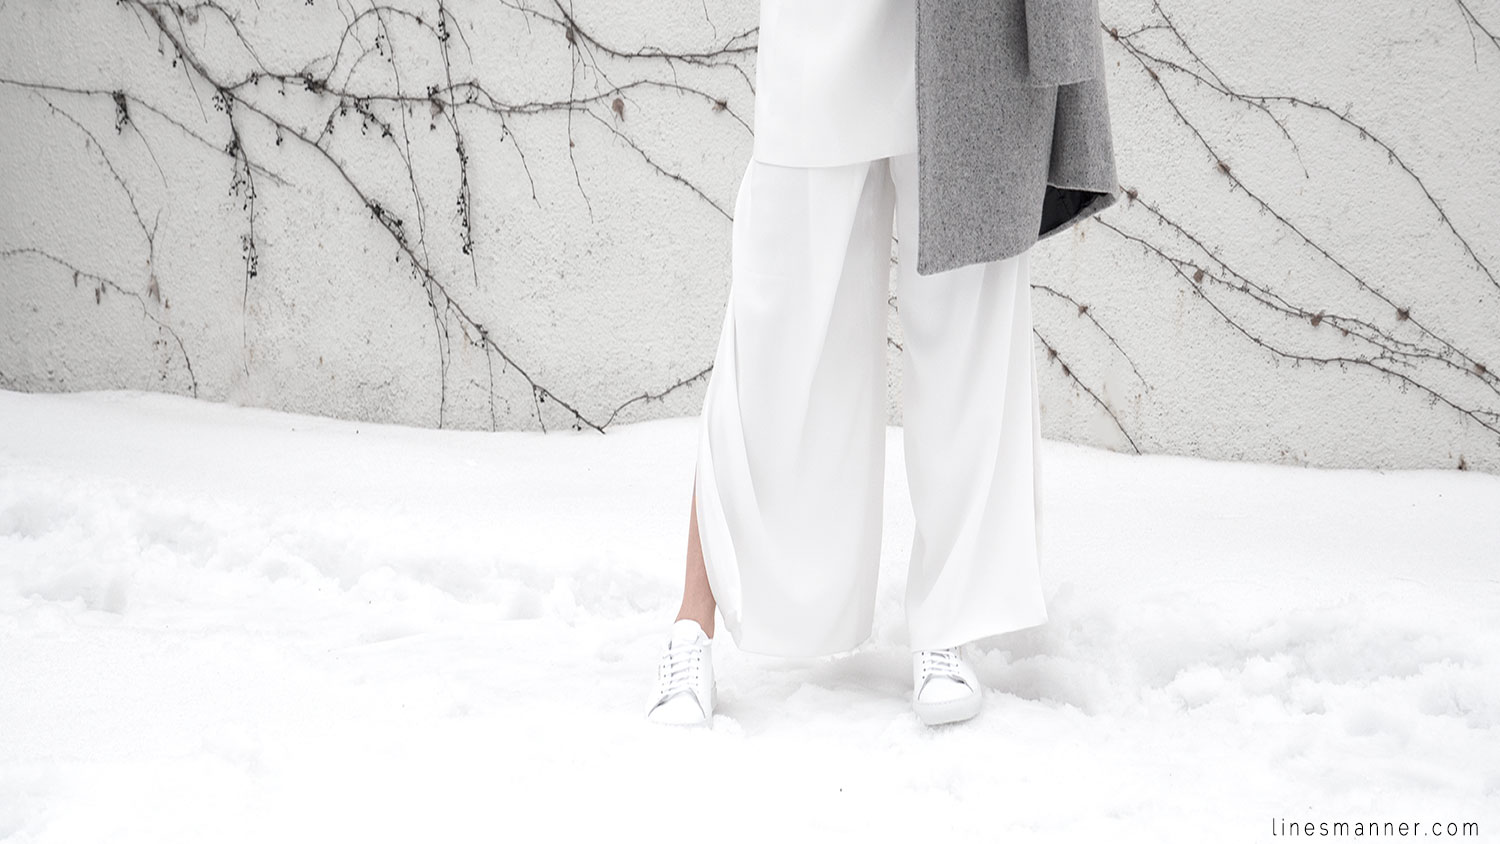 Lines-Manner-White_on_White-All_white-relaxed-shapes-tailored-blazer-pantsuit-clean-details-staples-essentials-sleek-LXE-box bag-light-fresh-slouchy-8